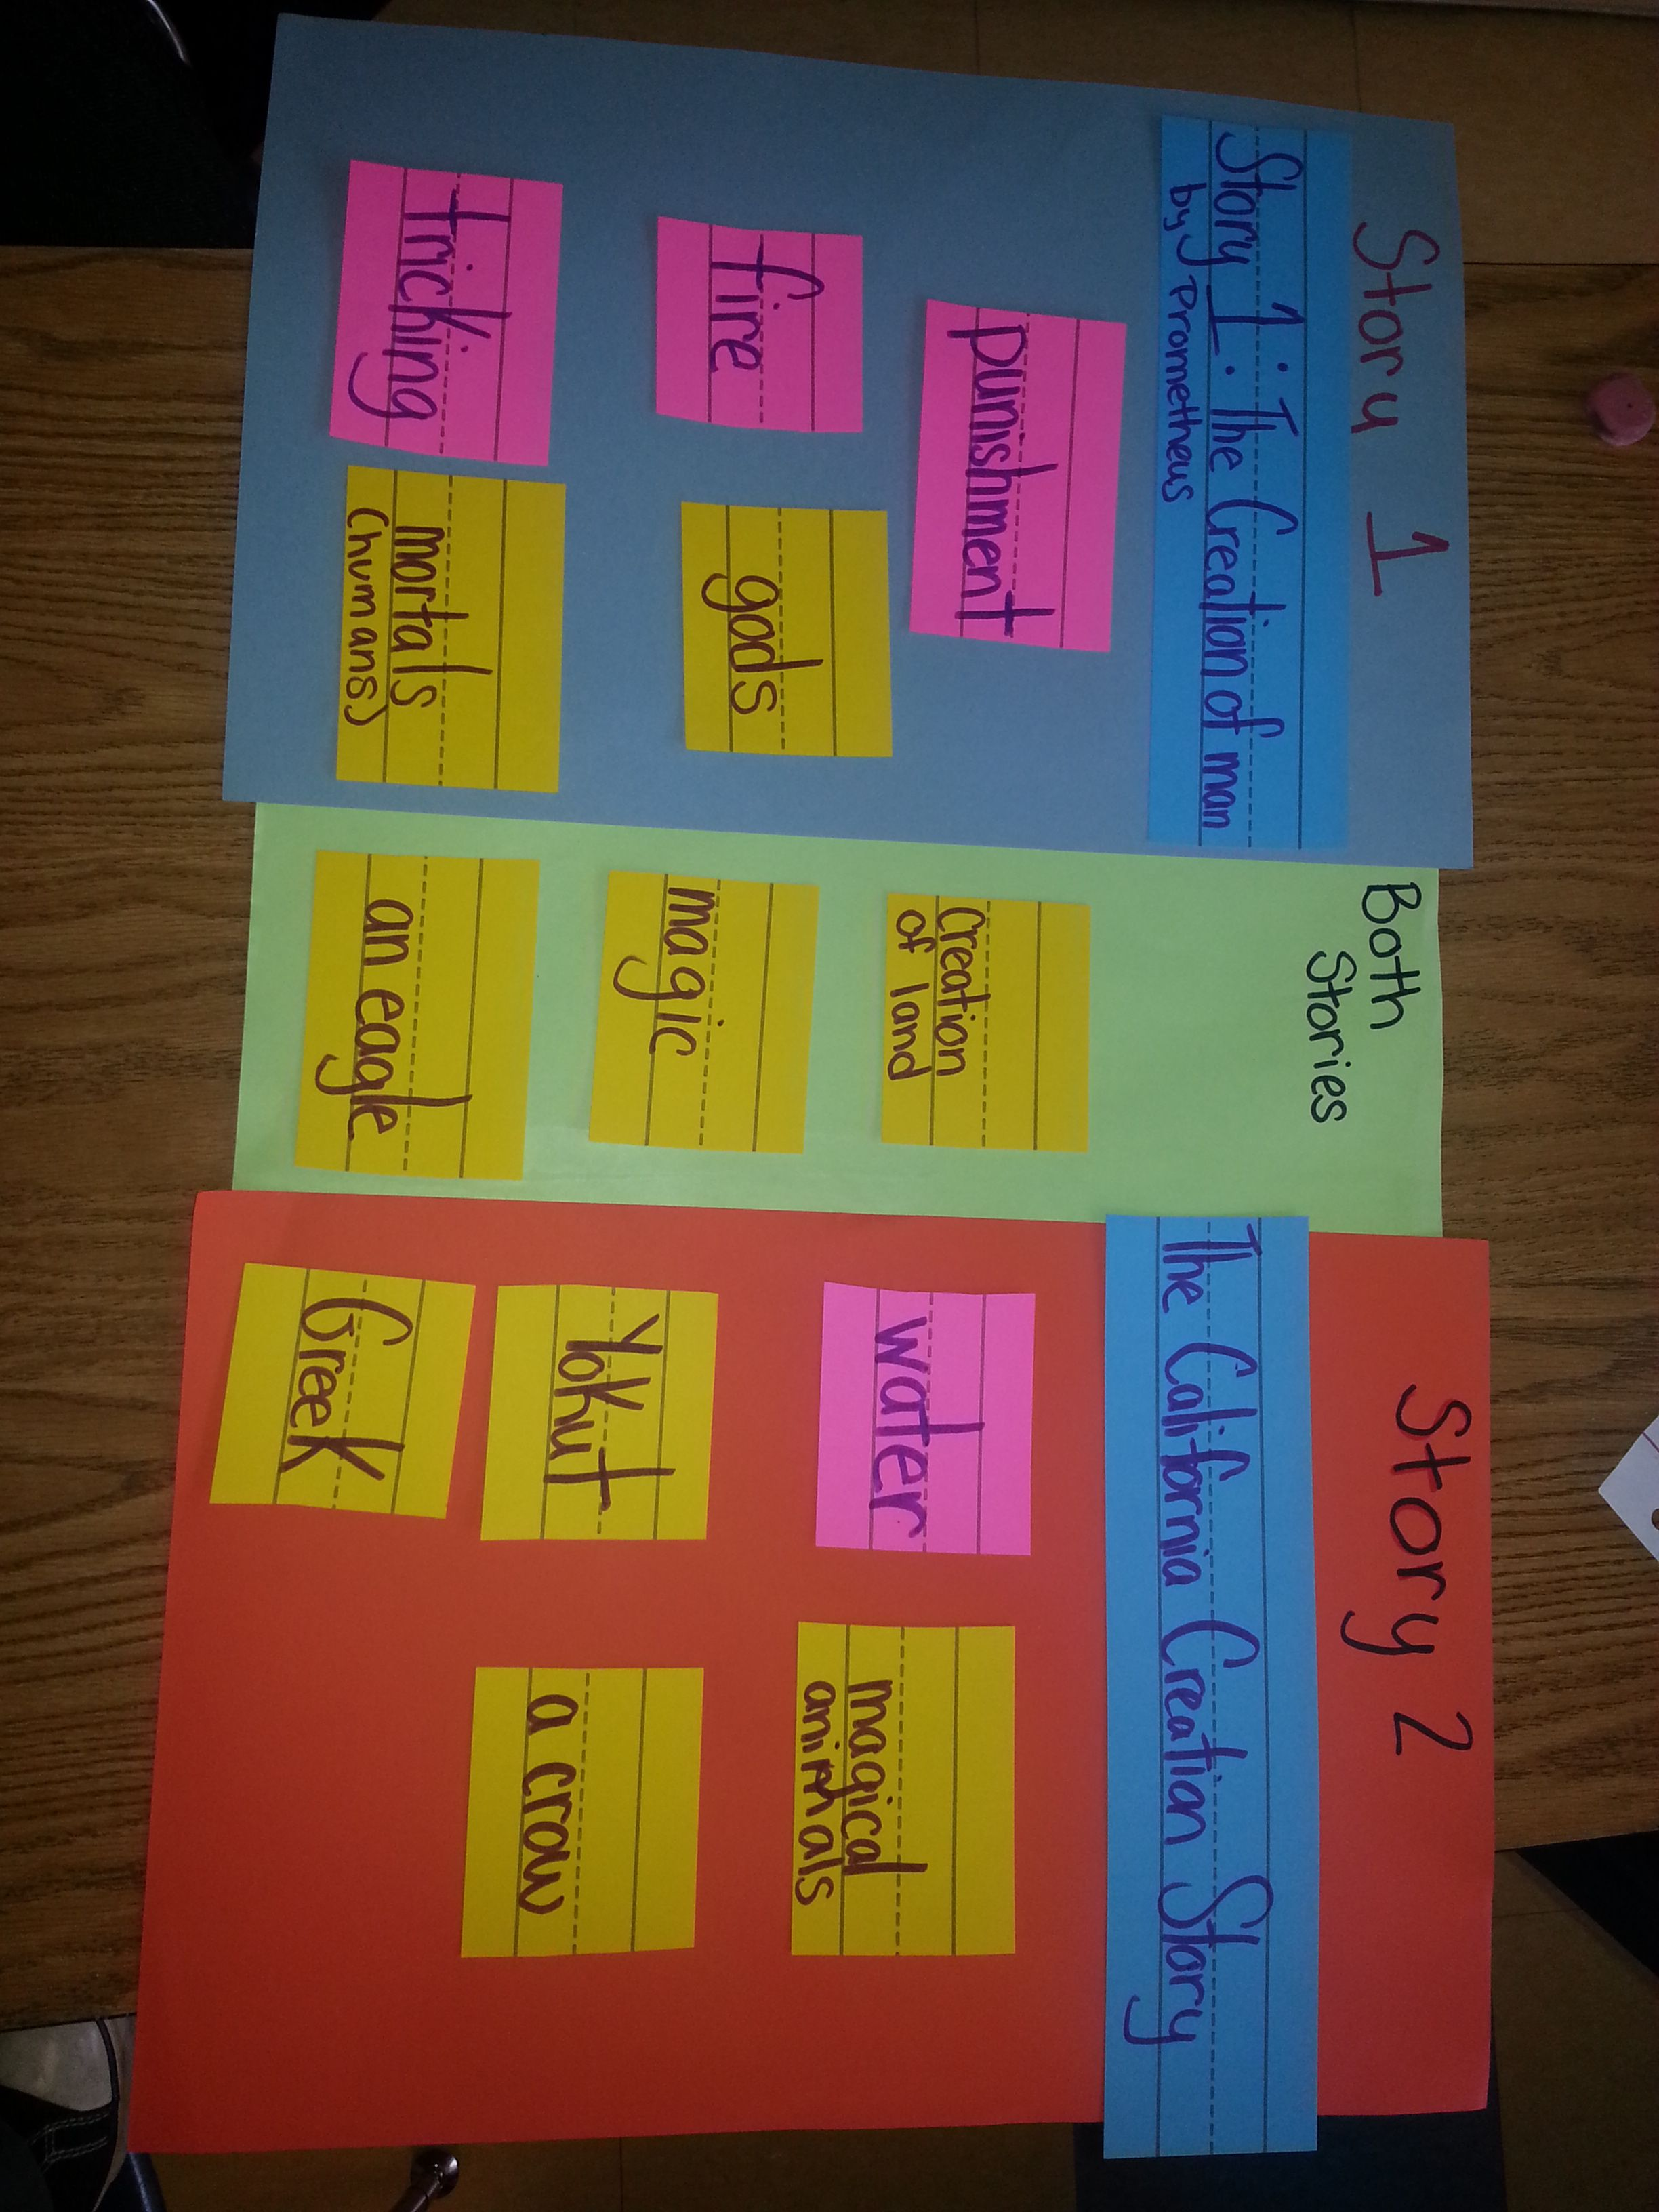 Look An Interactive Venn Compare And Contrast Activity